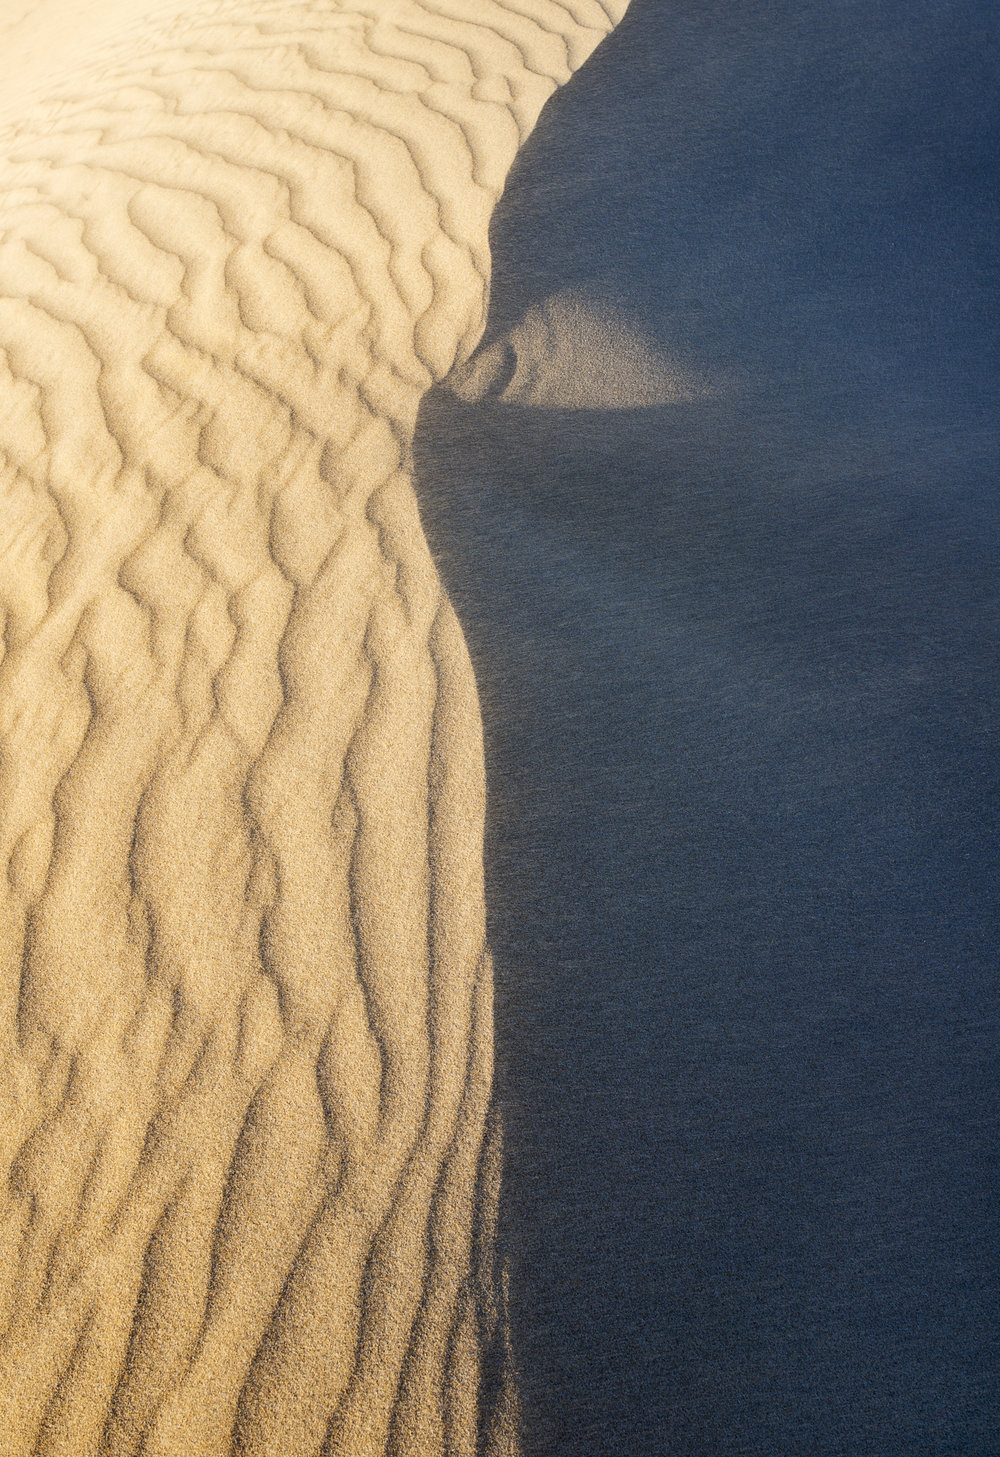 Wind patterns atop the dunes at Little Sahara.